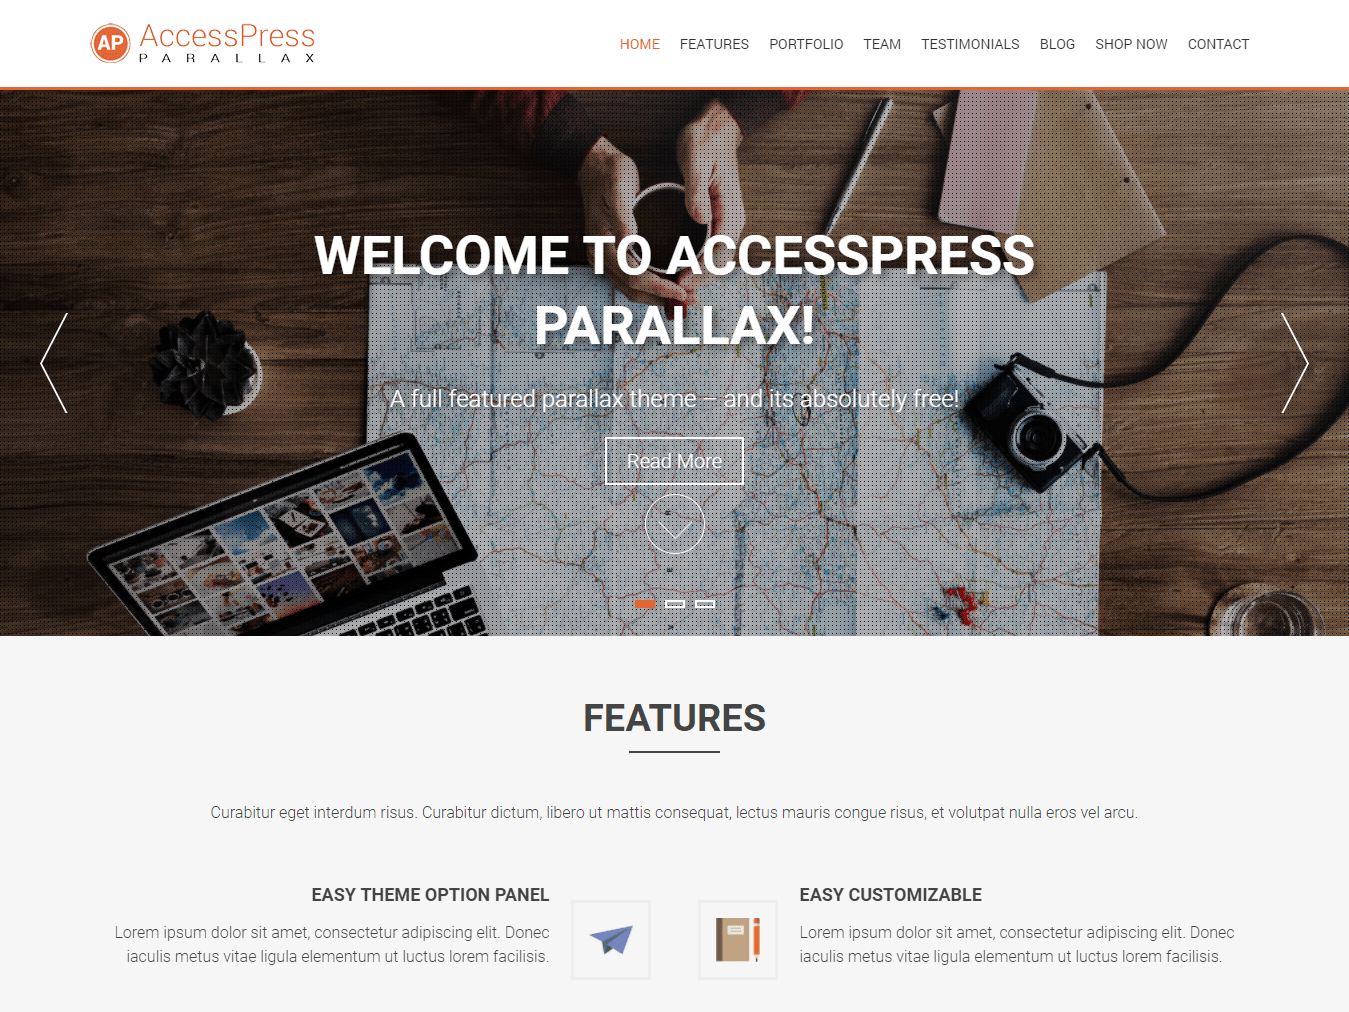 AccessPress Parallax Download Free Wordpress Theme 2